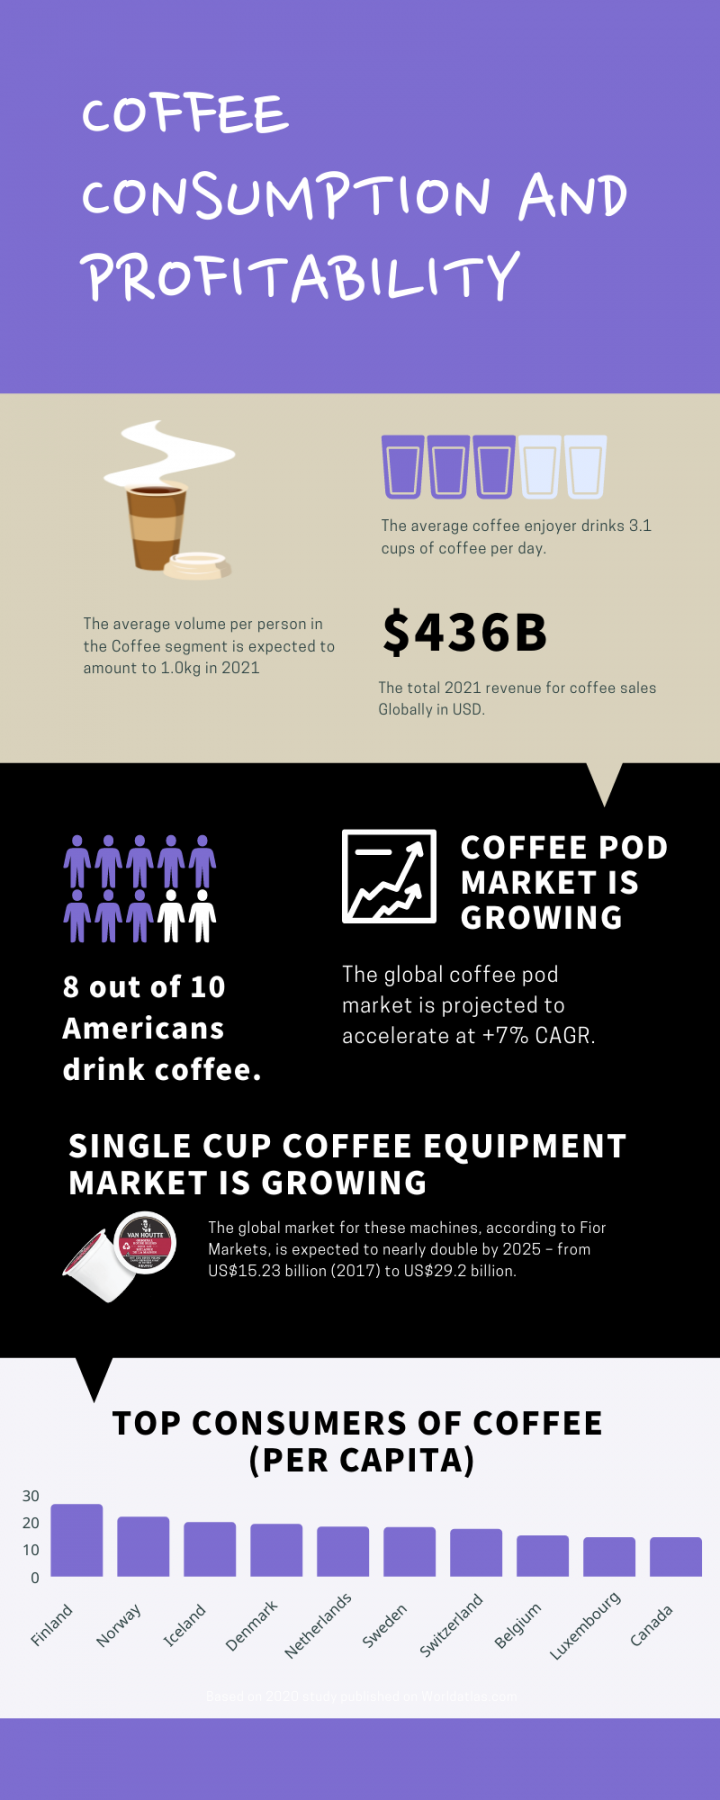 Profitability of the coffee industry